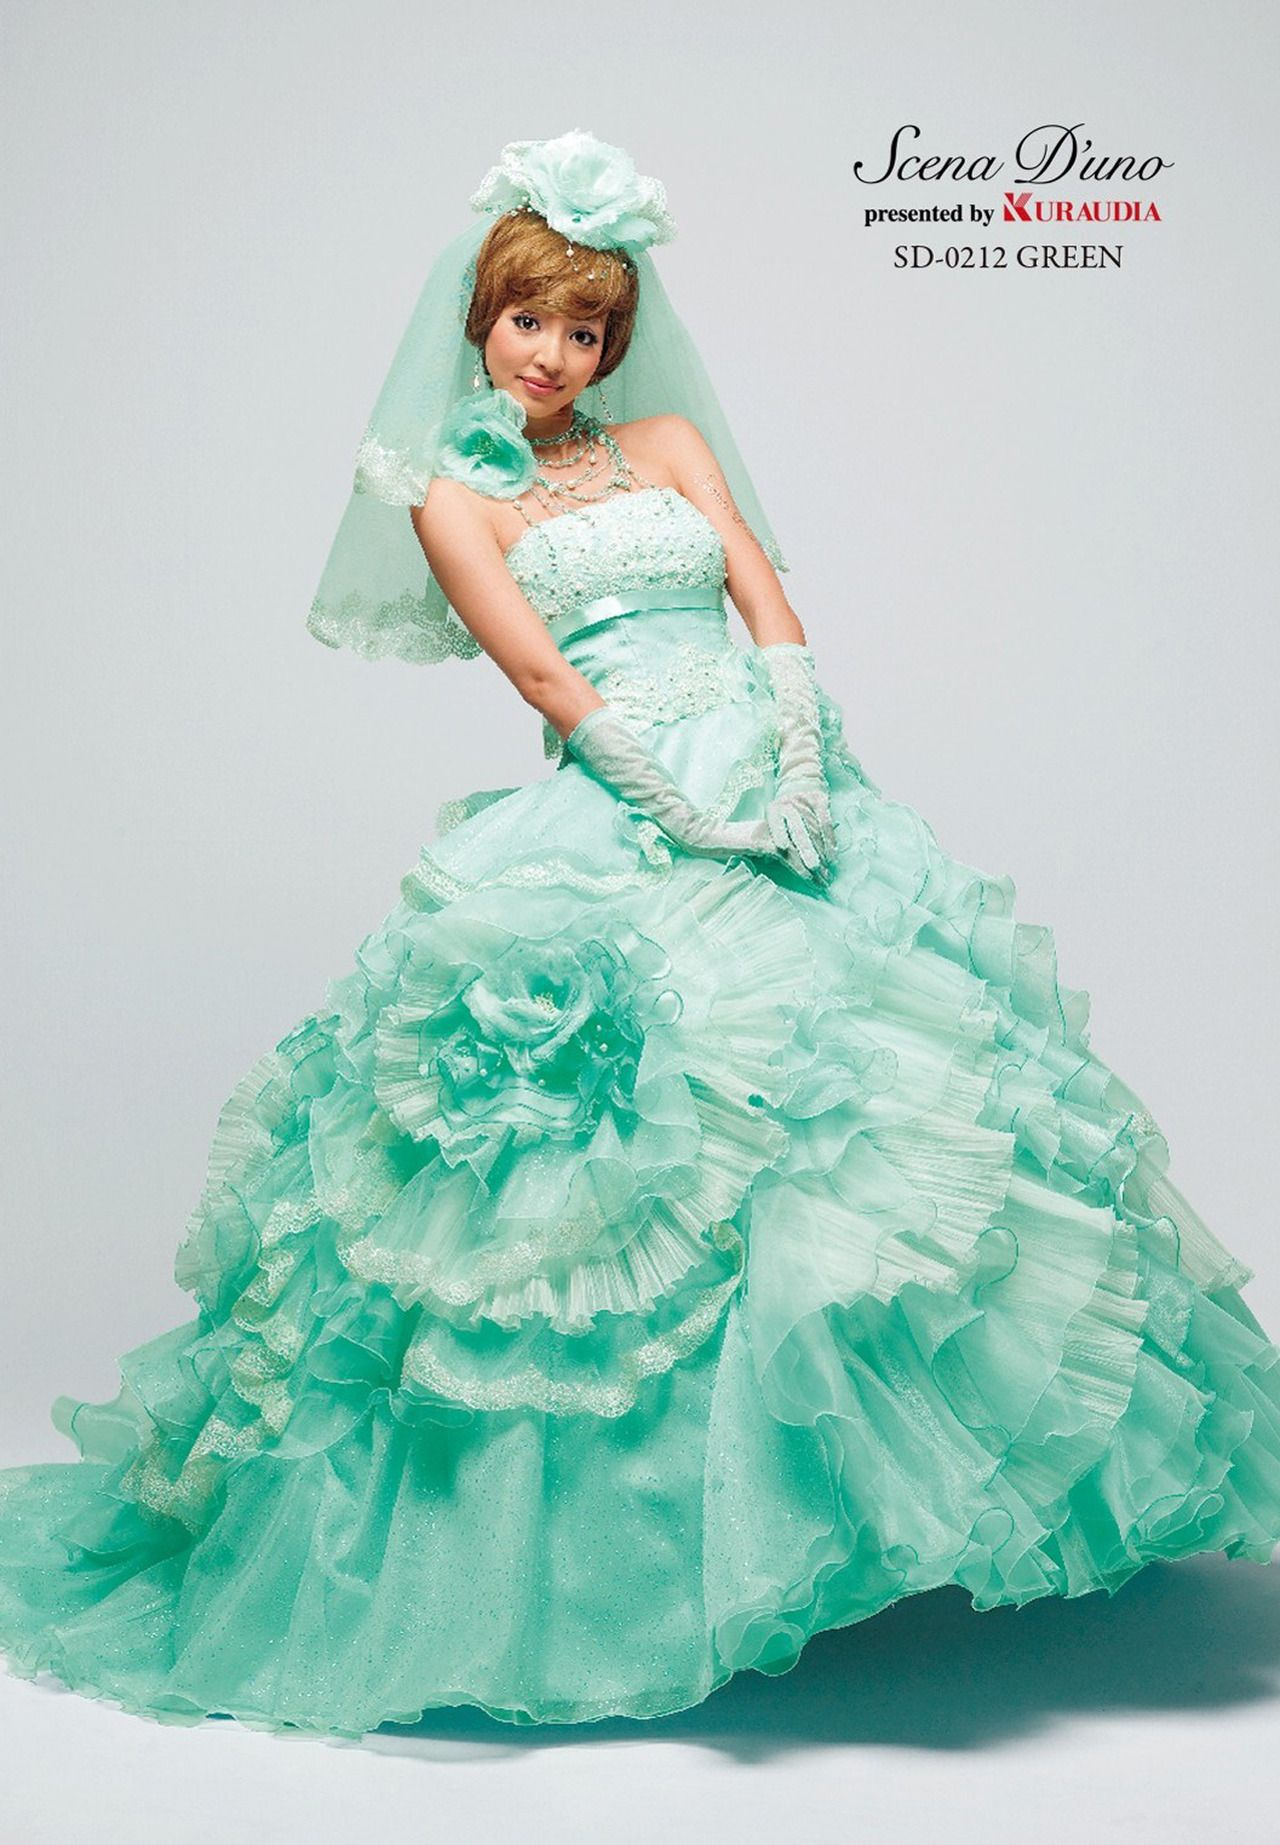 dball~dress ballgown: 画像 | Amazing Dresses and Gowns | Pinterest